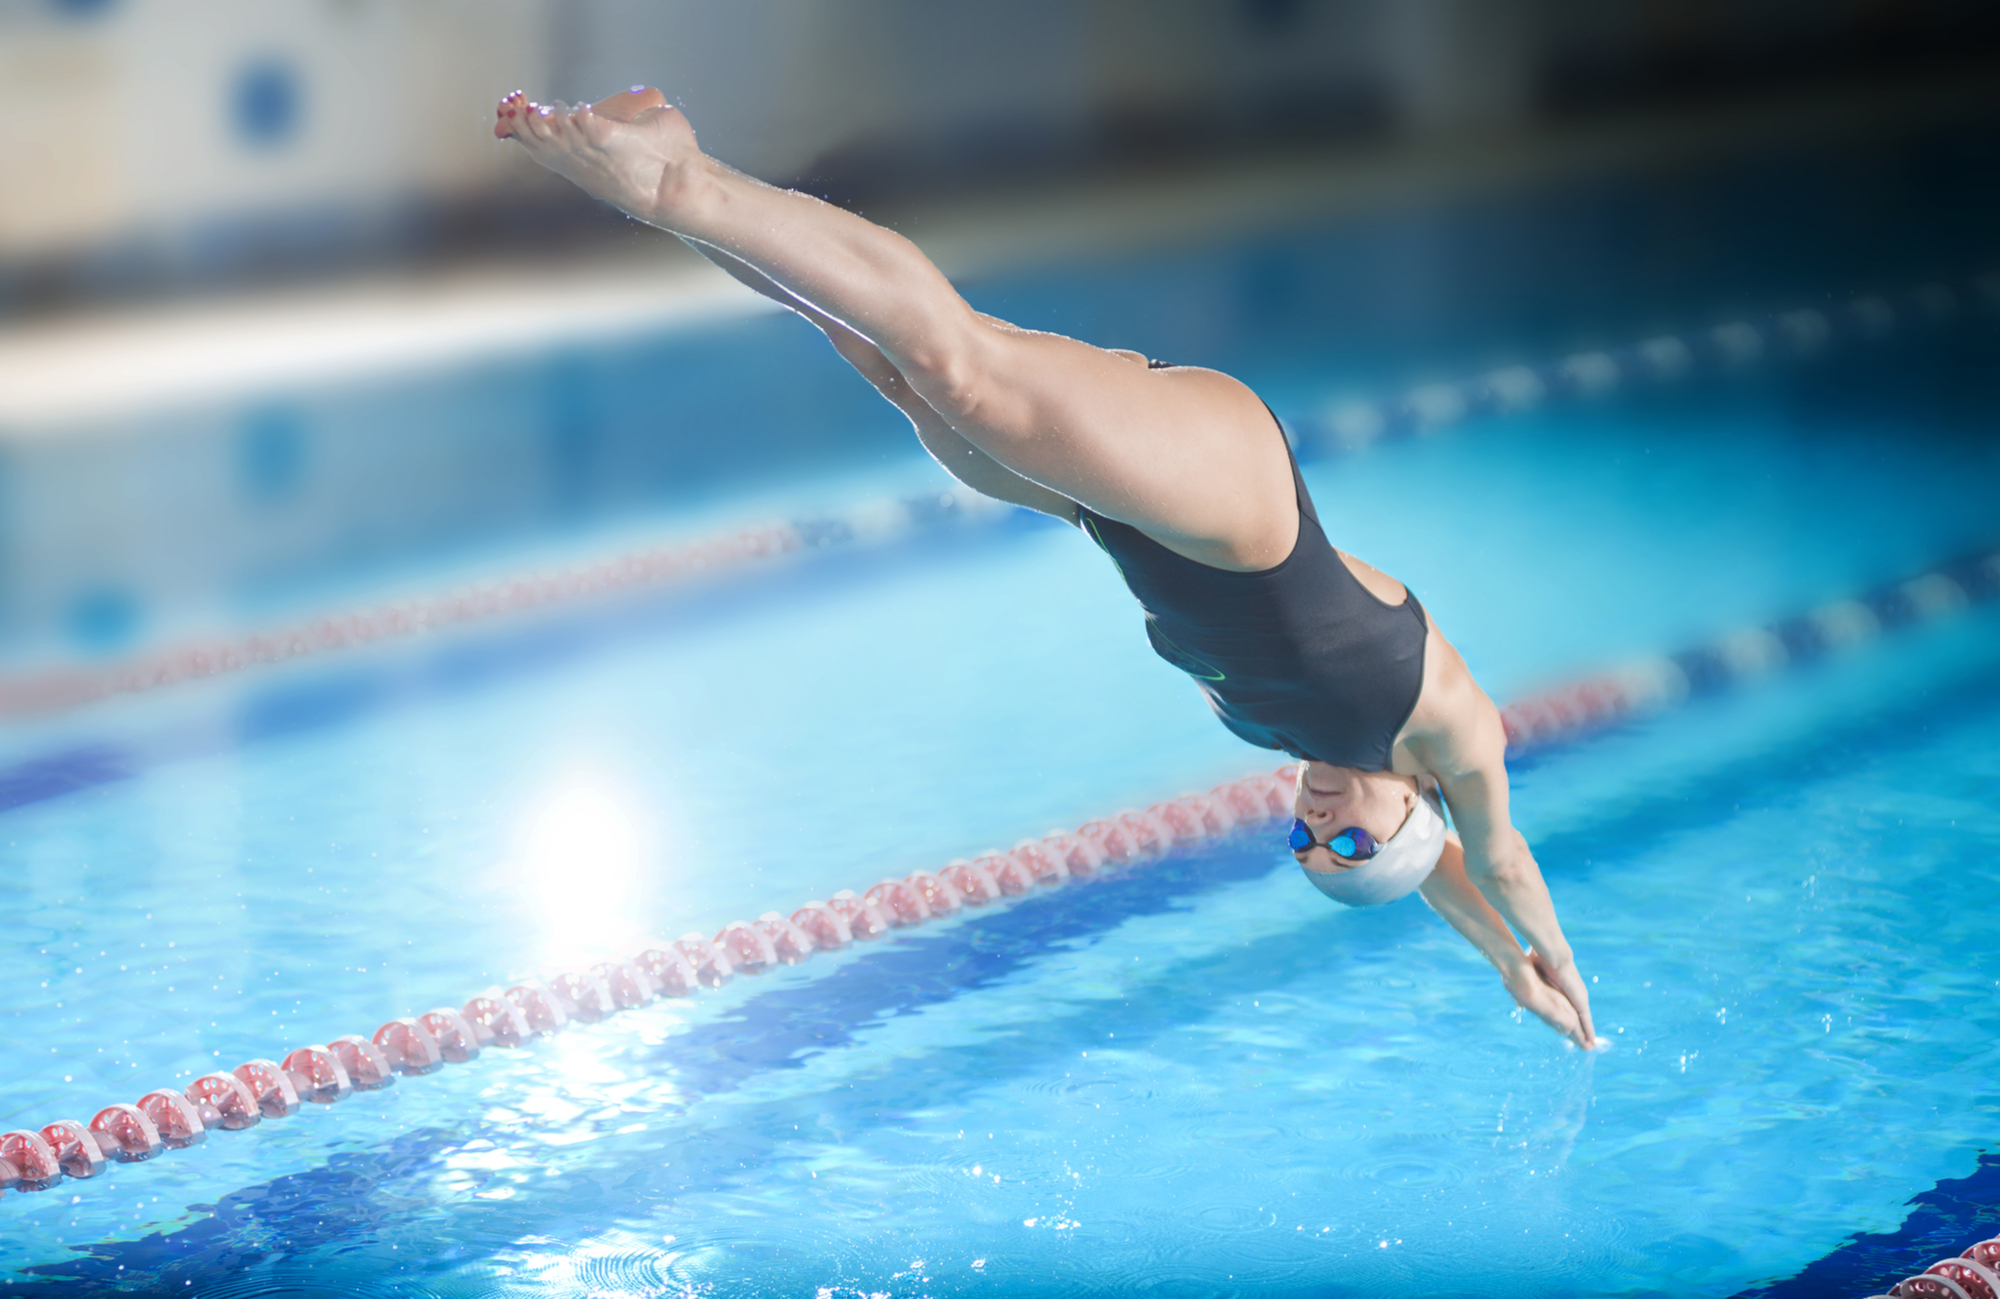 Female swimmer jumping and diving into indoor swimming pool